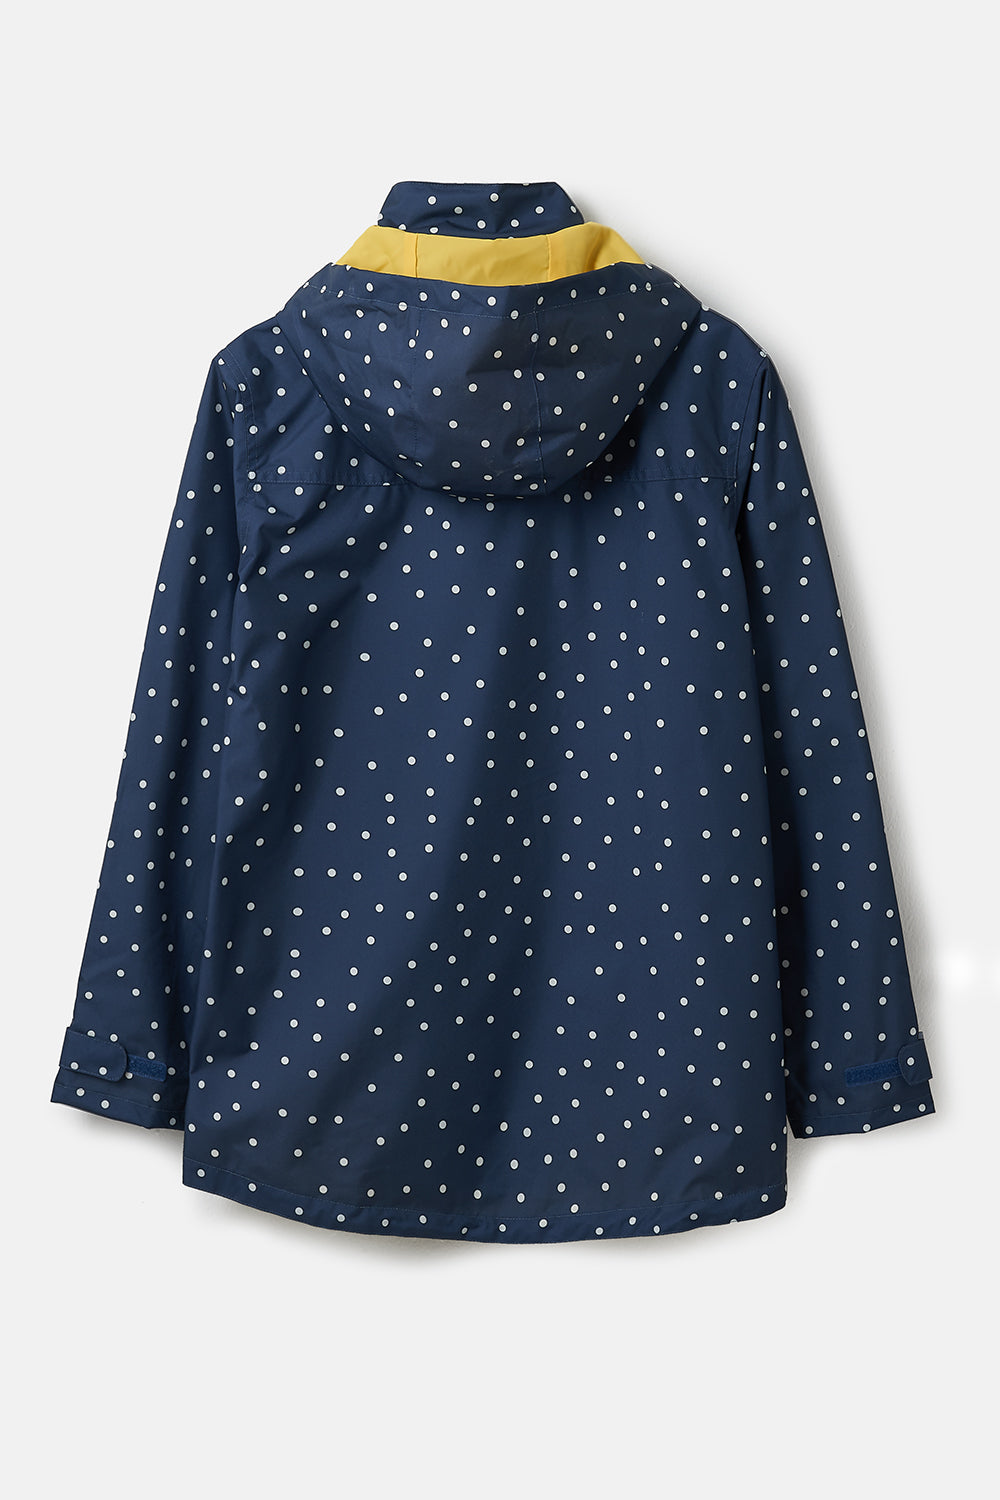 Alia Jacket - Midnight Dot